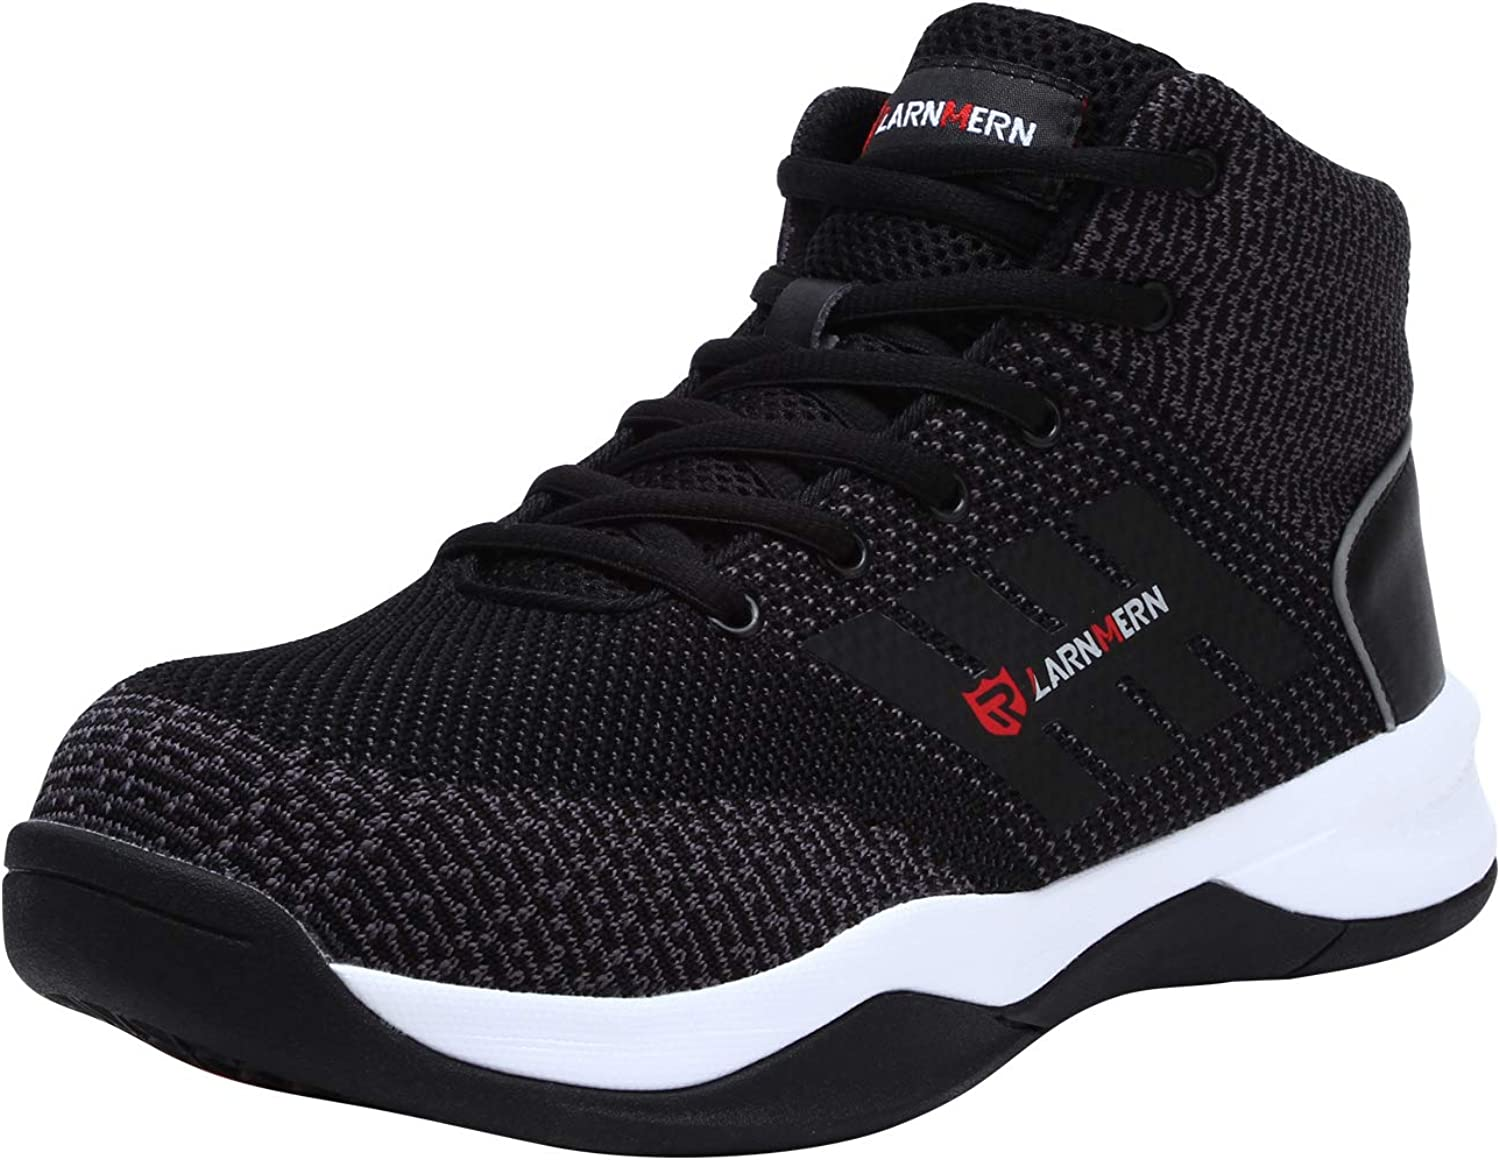 Men's Steel-Toed Safety Boots,LM-1035 Slip-Resistant Breathable Work Trainers